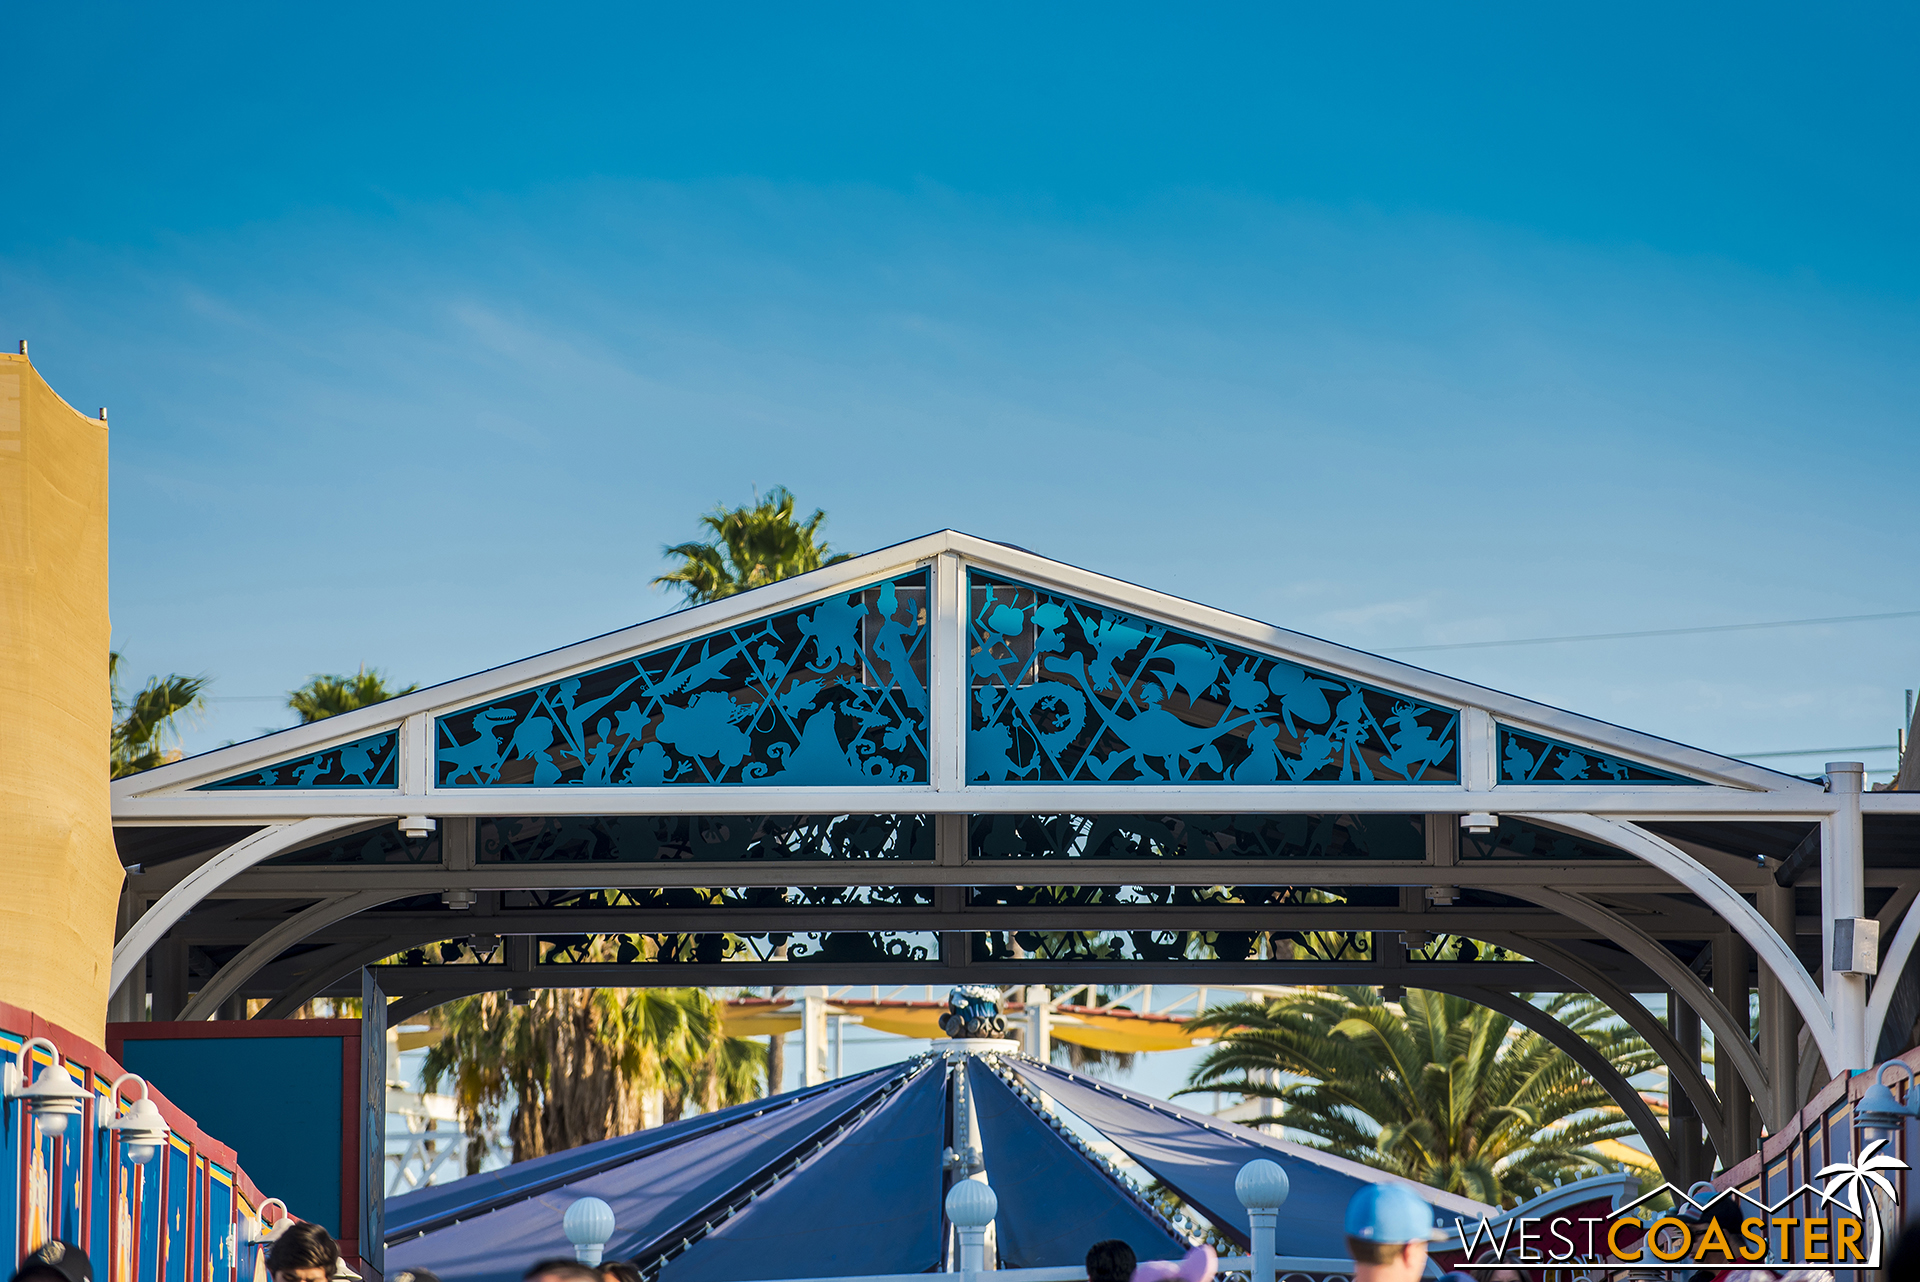 The new canopy over the main walkway has been given a series of silhouettes of various Pixar characters.